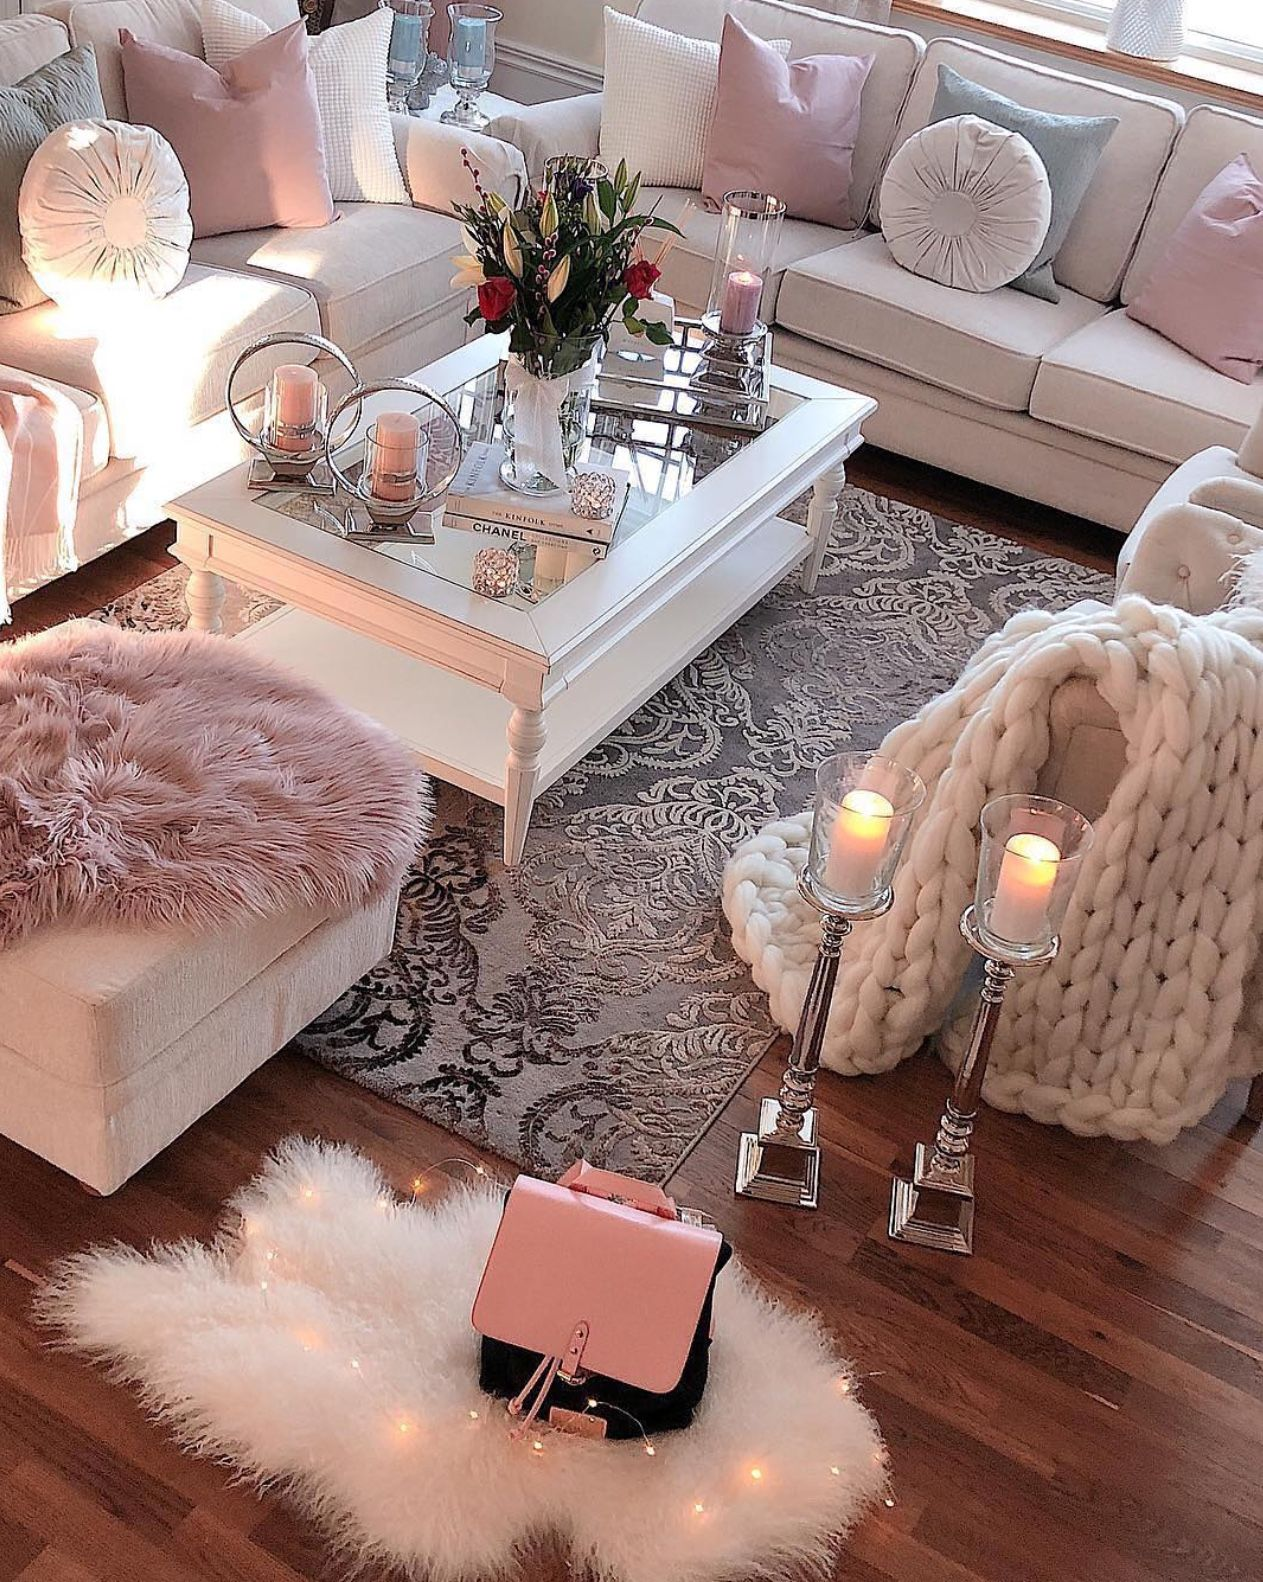 Pin By Dalys Melendez On Dream Home Living Room Decor Cozy Romantic Living Room Living Room Decor Apartment